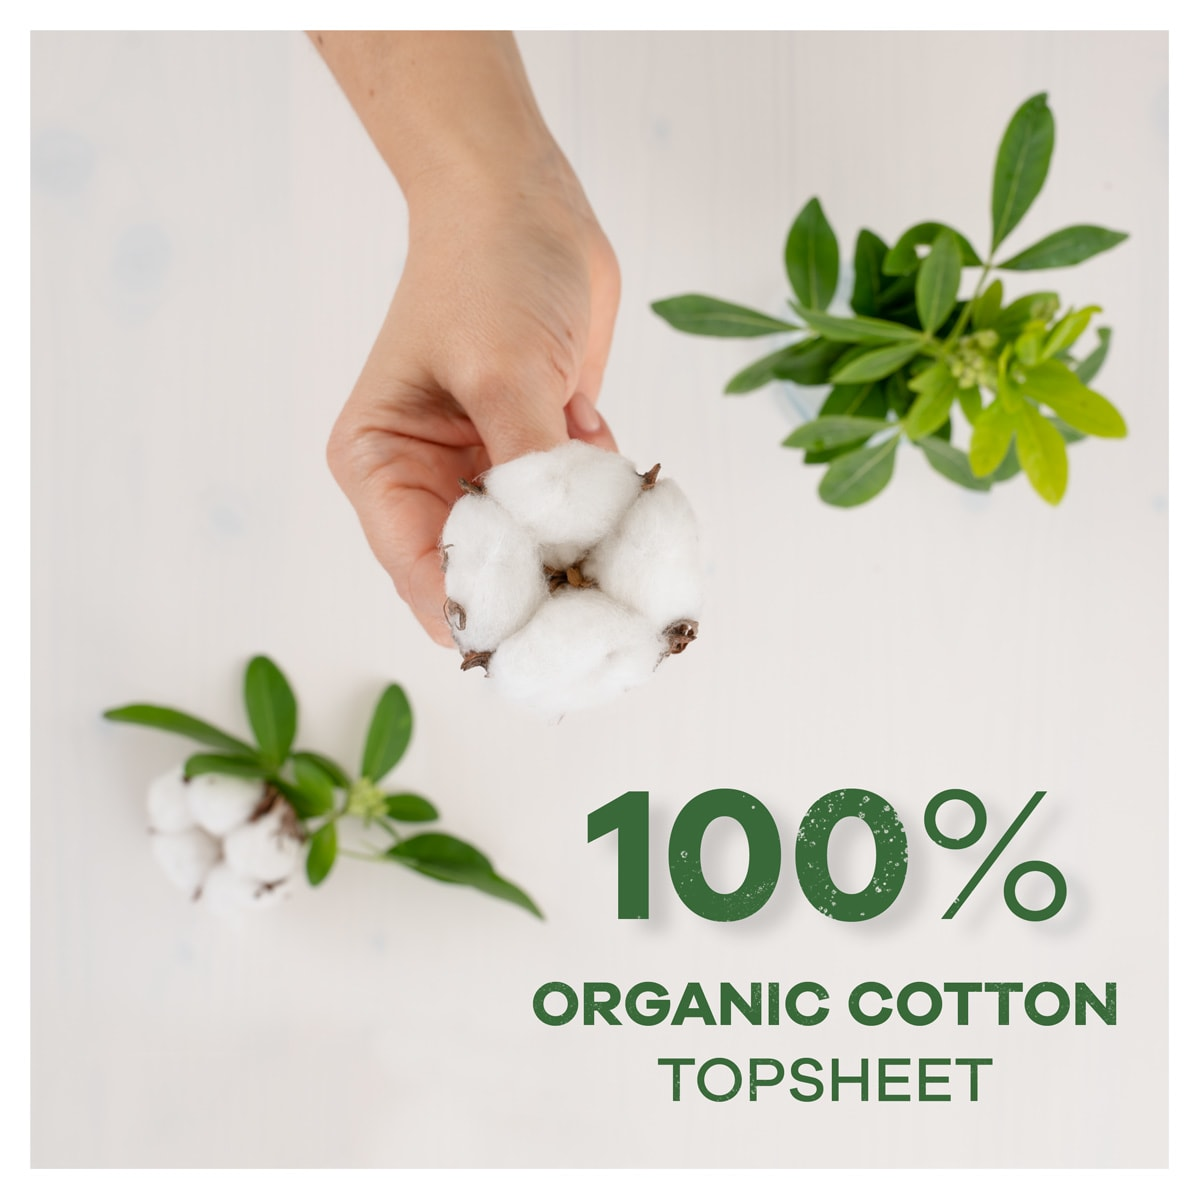 100% Organic Cotton Topsheet